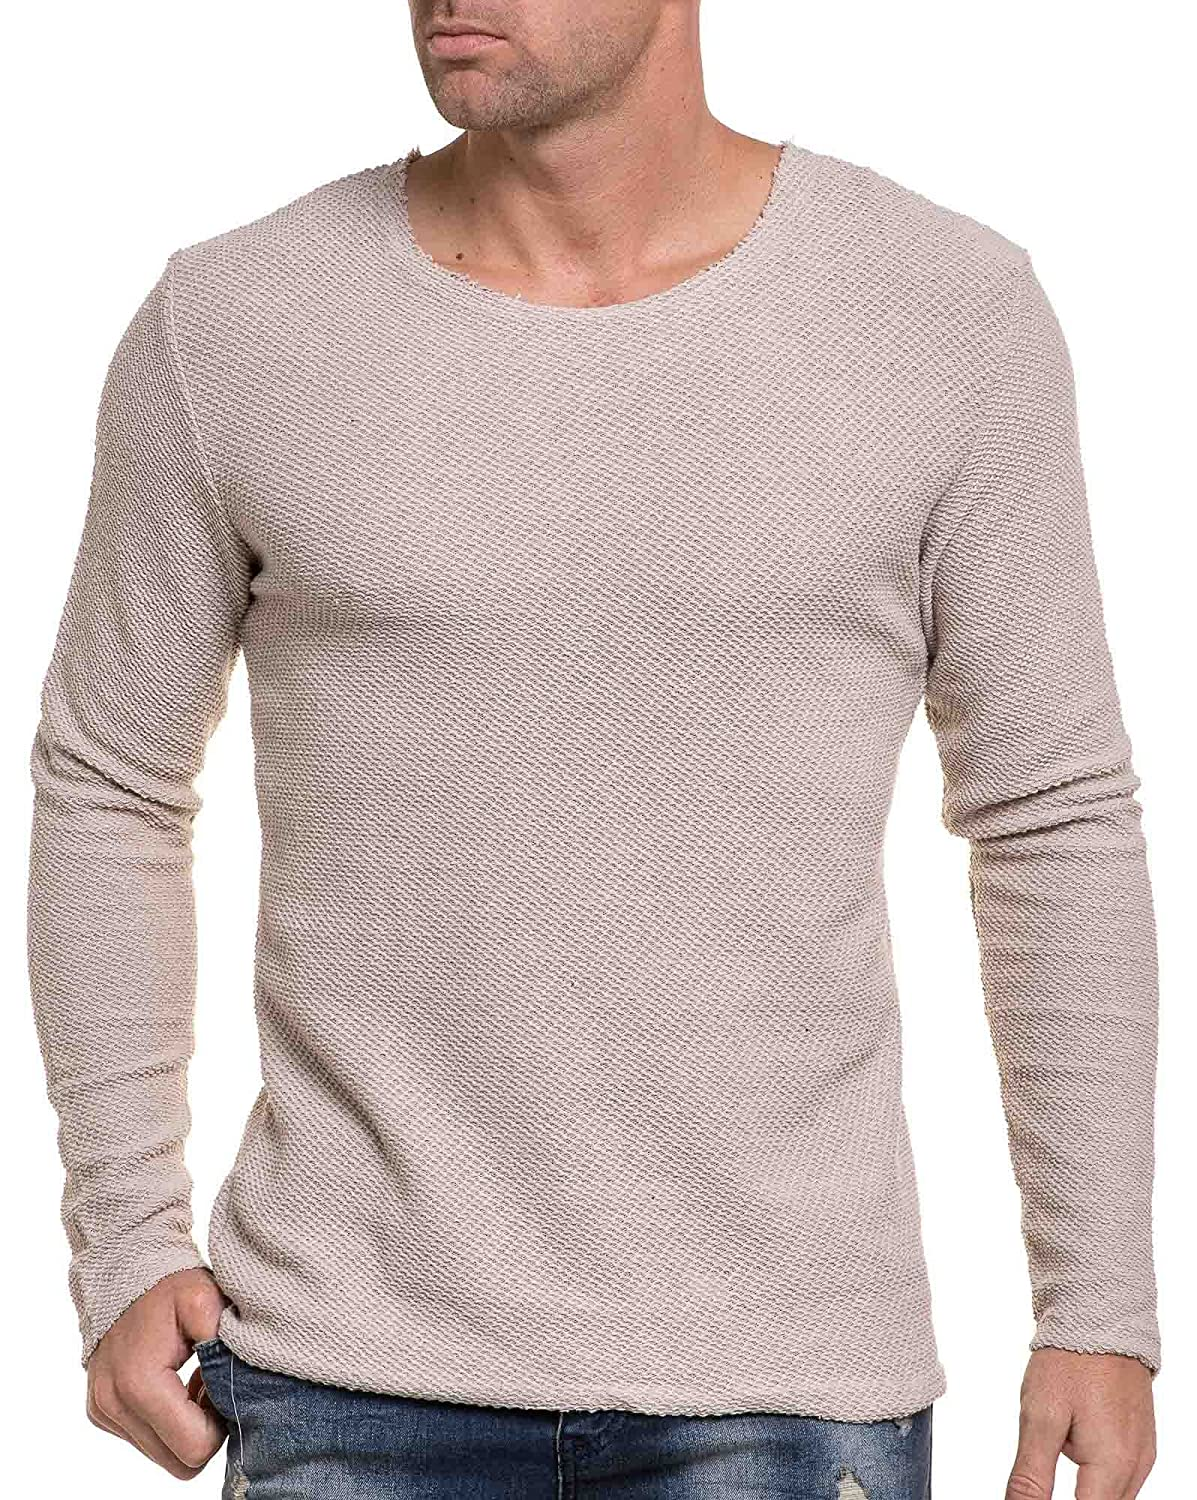 BLZ jeans - beige knitted sweater with wide round neckline